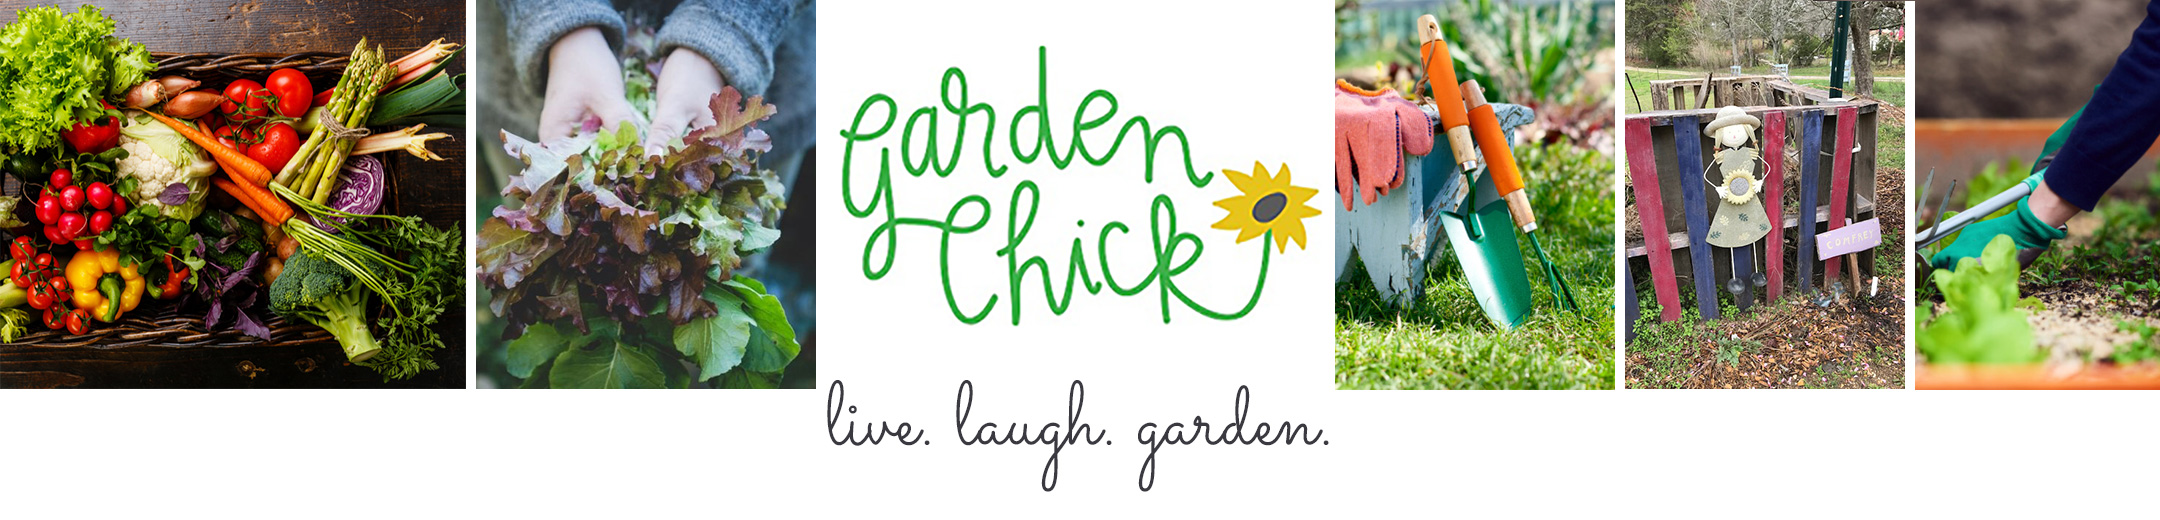 Garden Chick photos